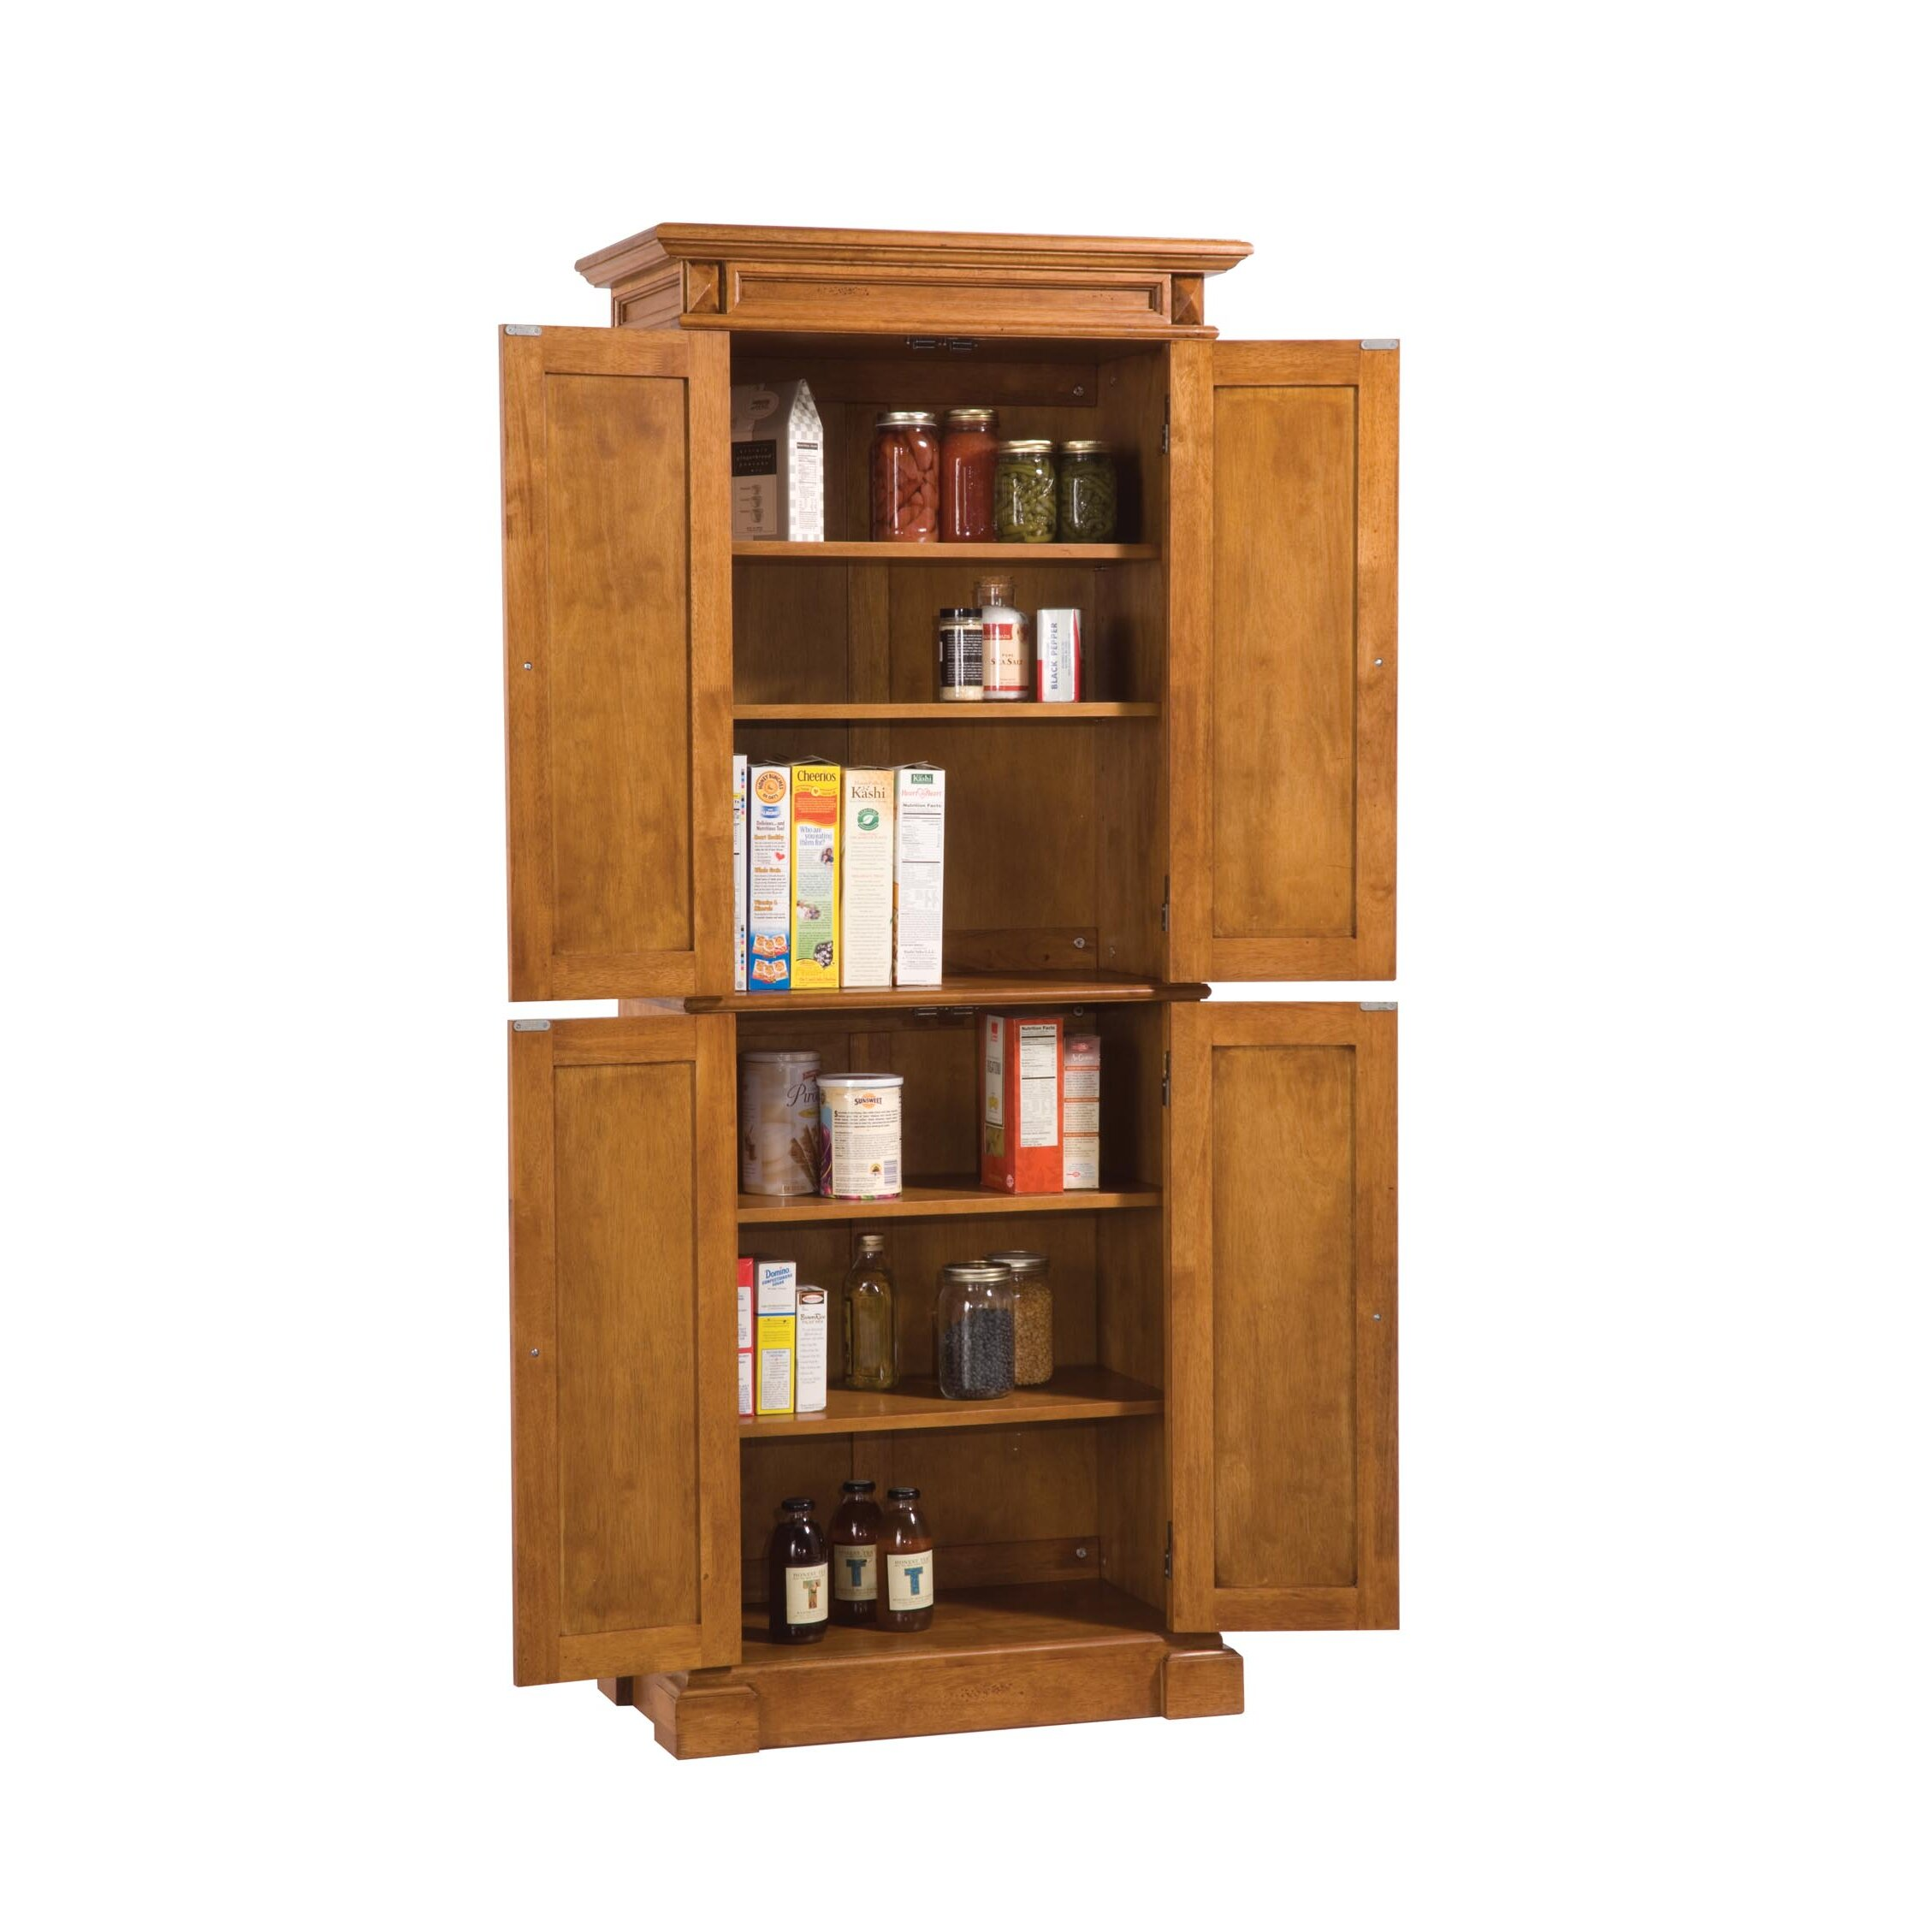 Furniture Kitchen Pantry Darby Home Co Fogleman Kitchen Pantry Reviews Wayfair